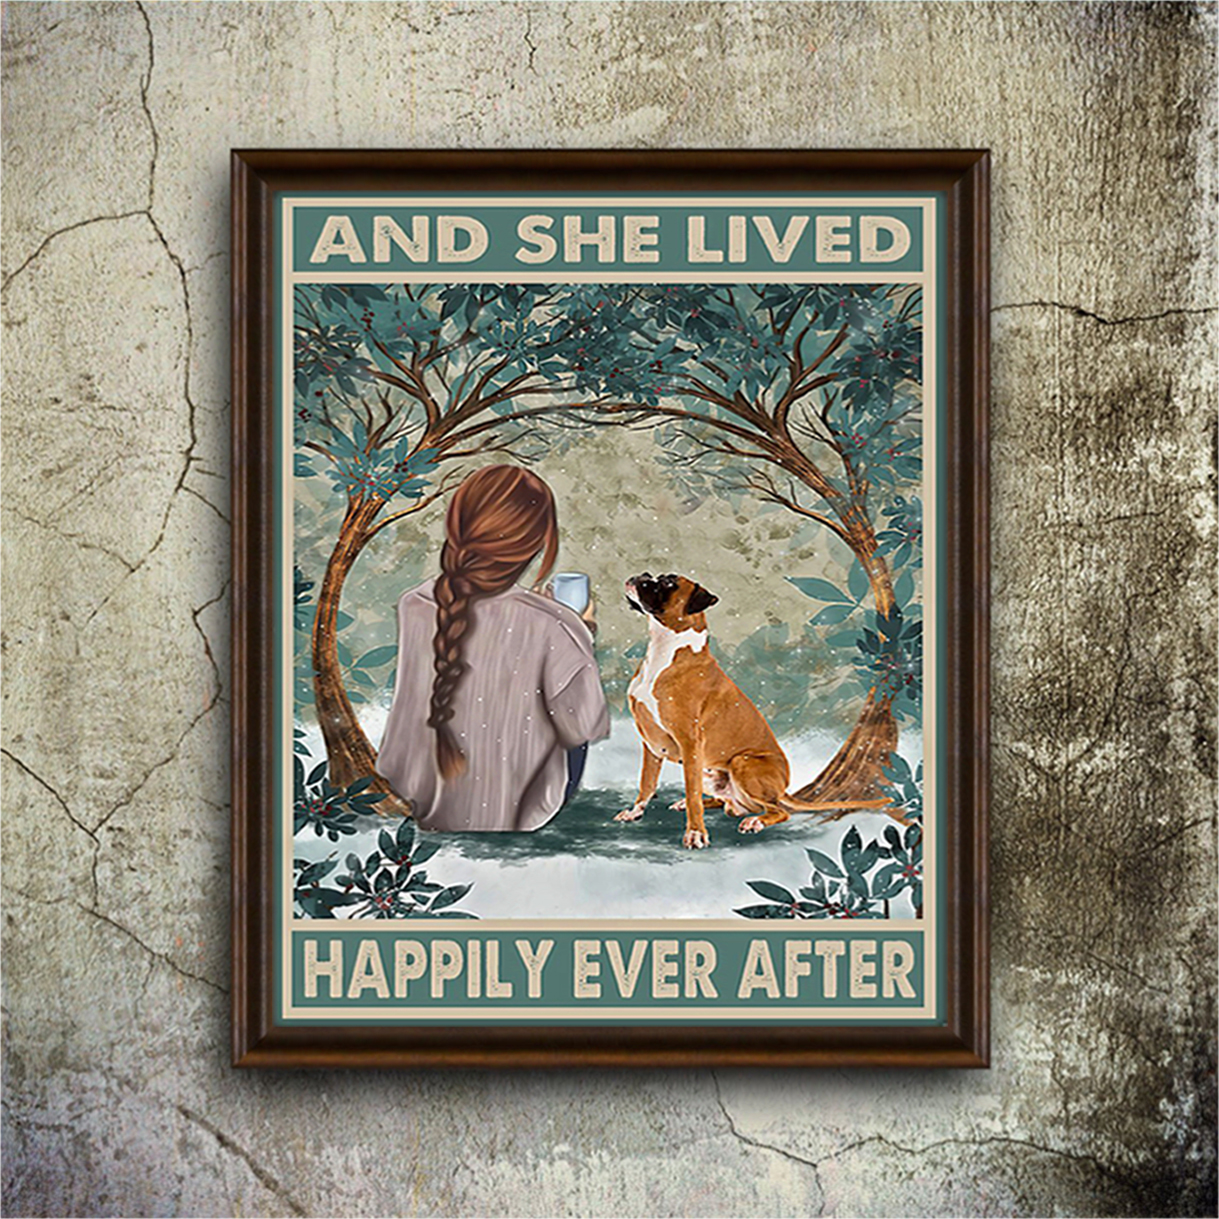 Boxer and she lived happily ever after poster A3